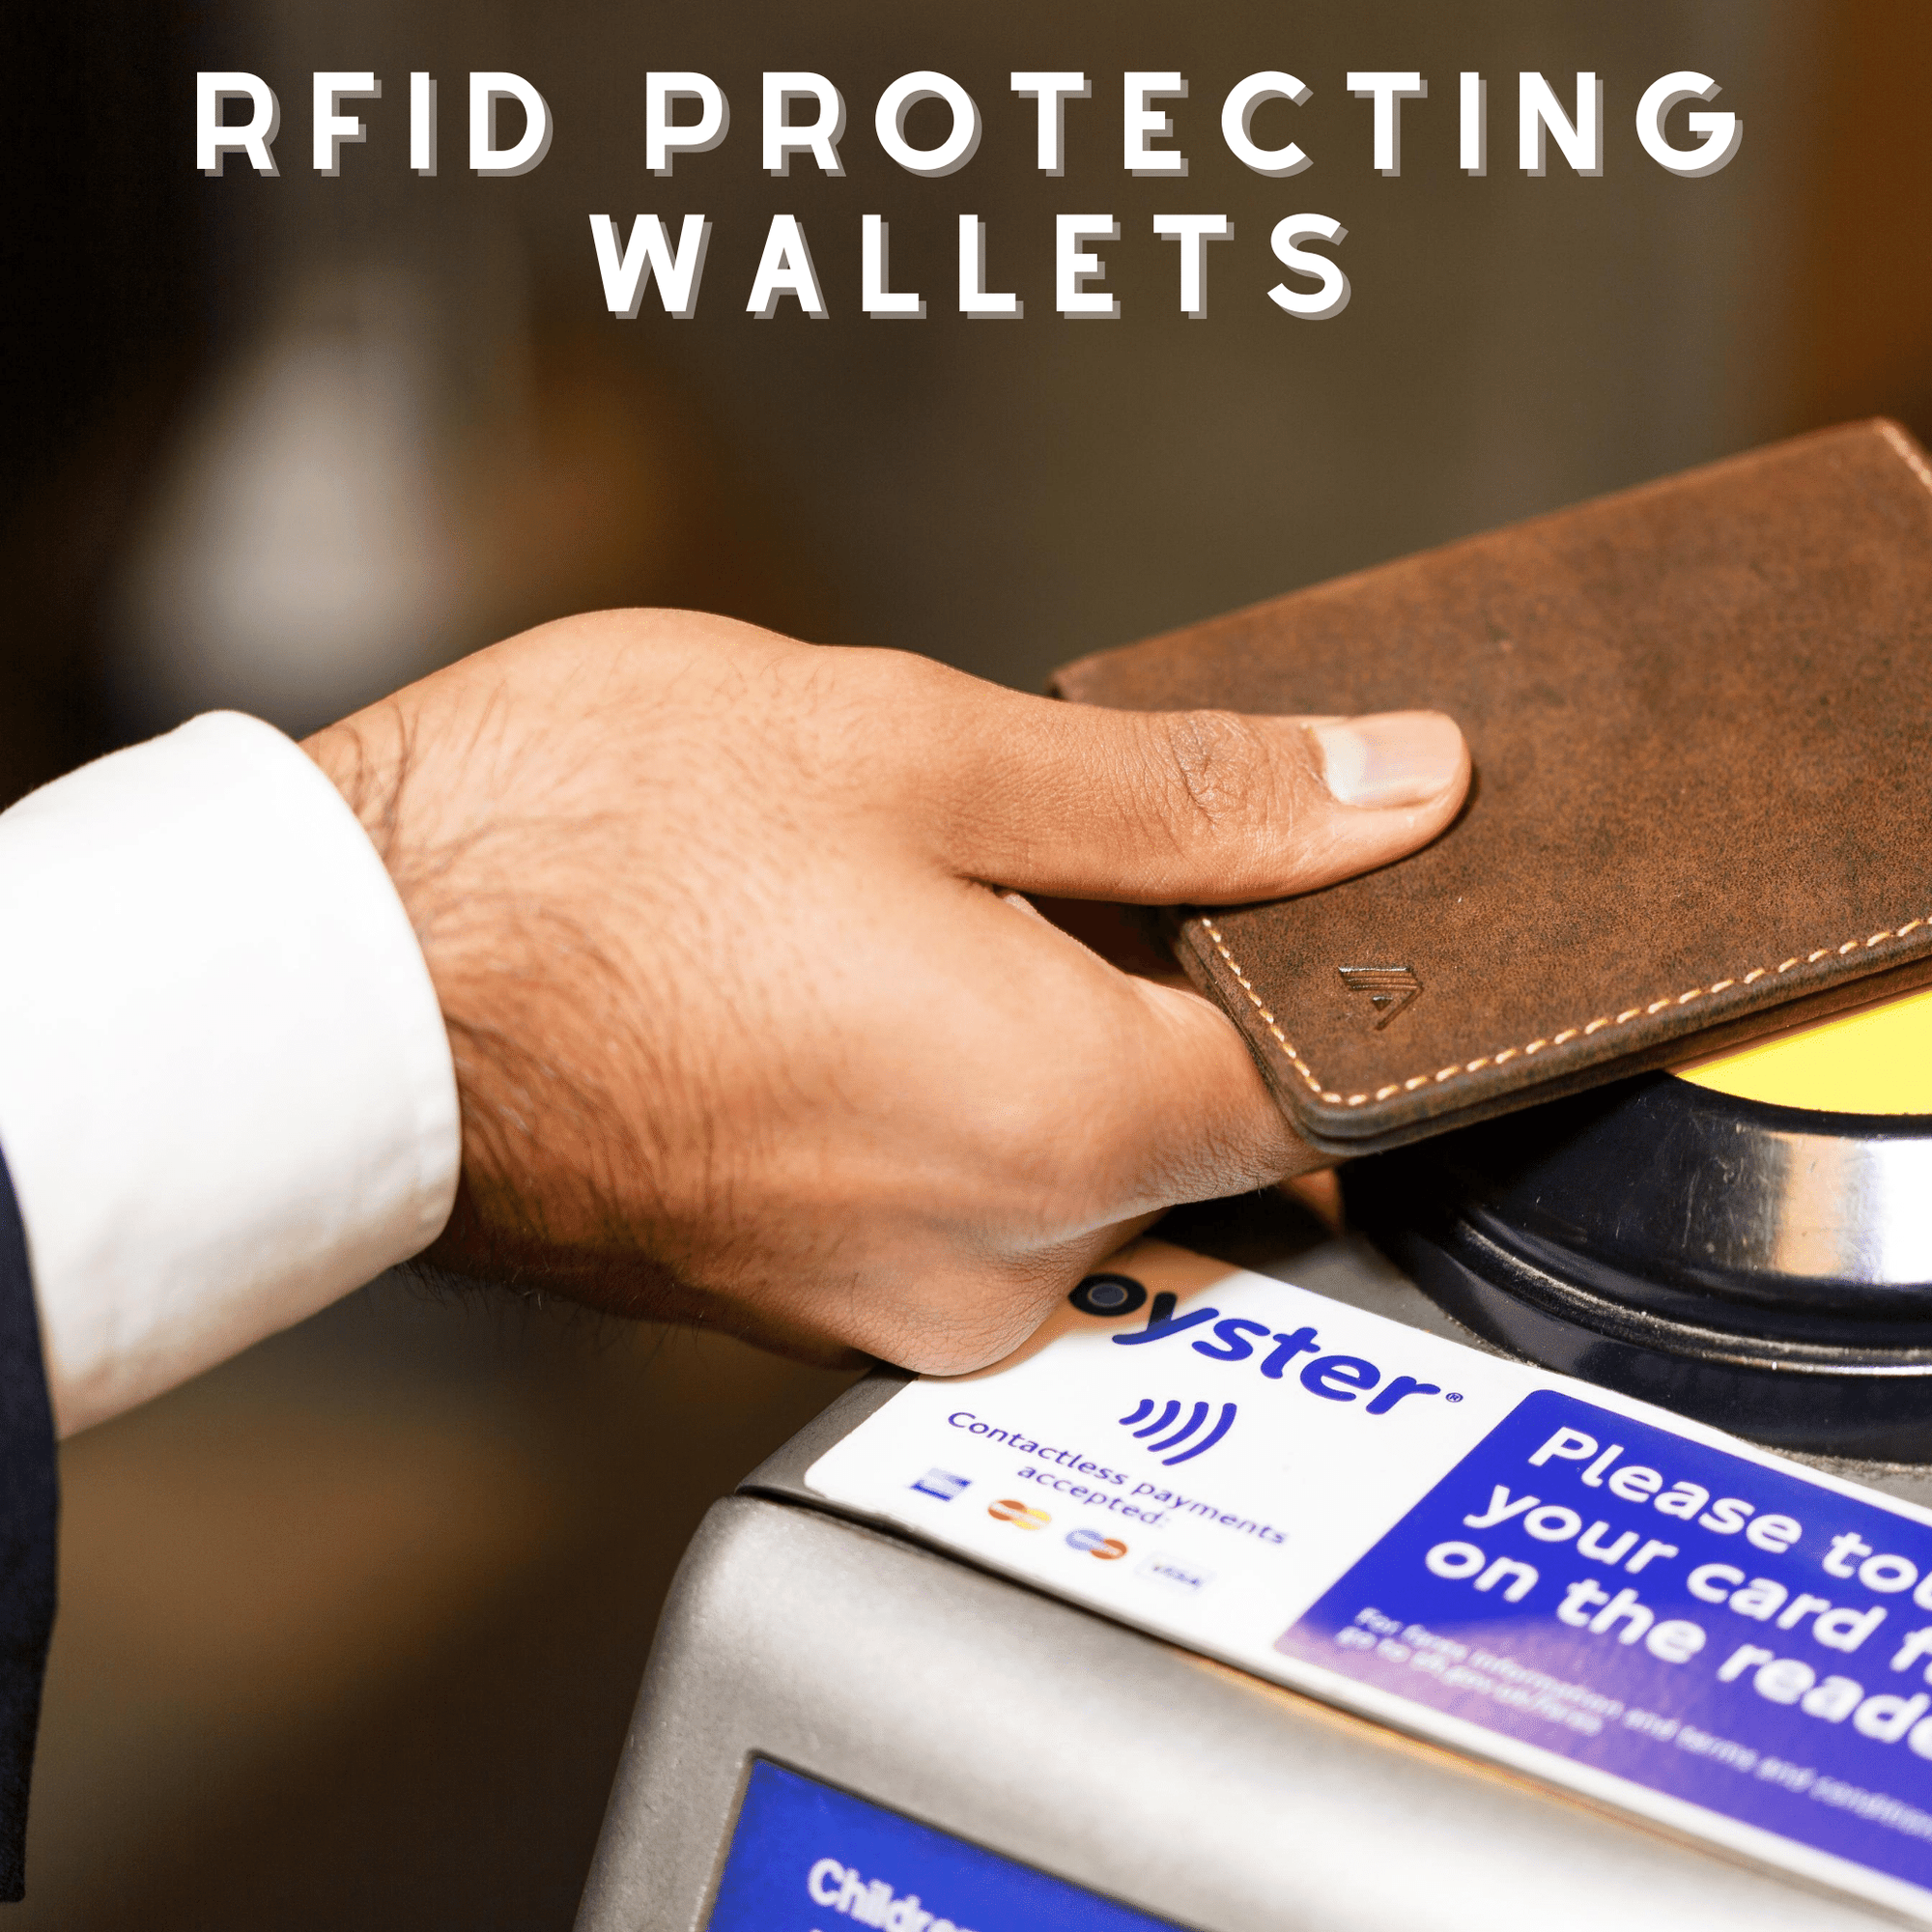 RFID Protecting Wallets